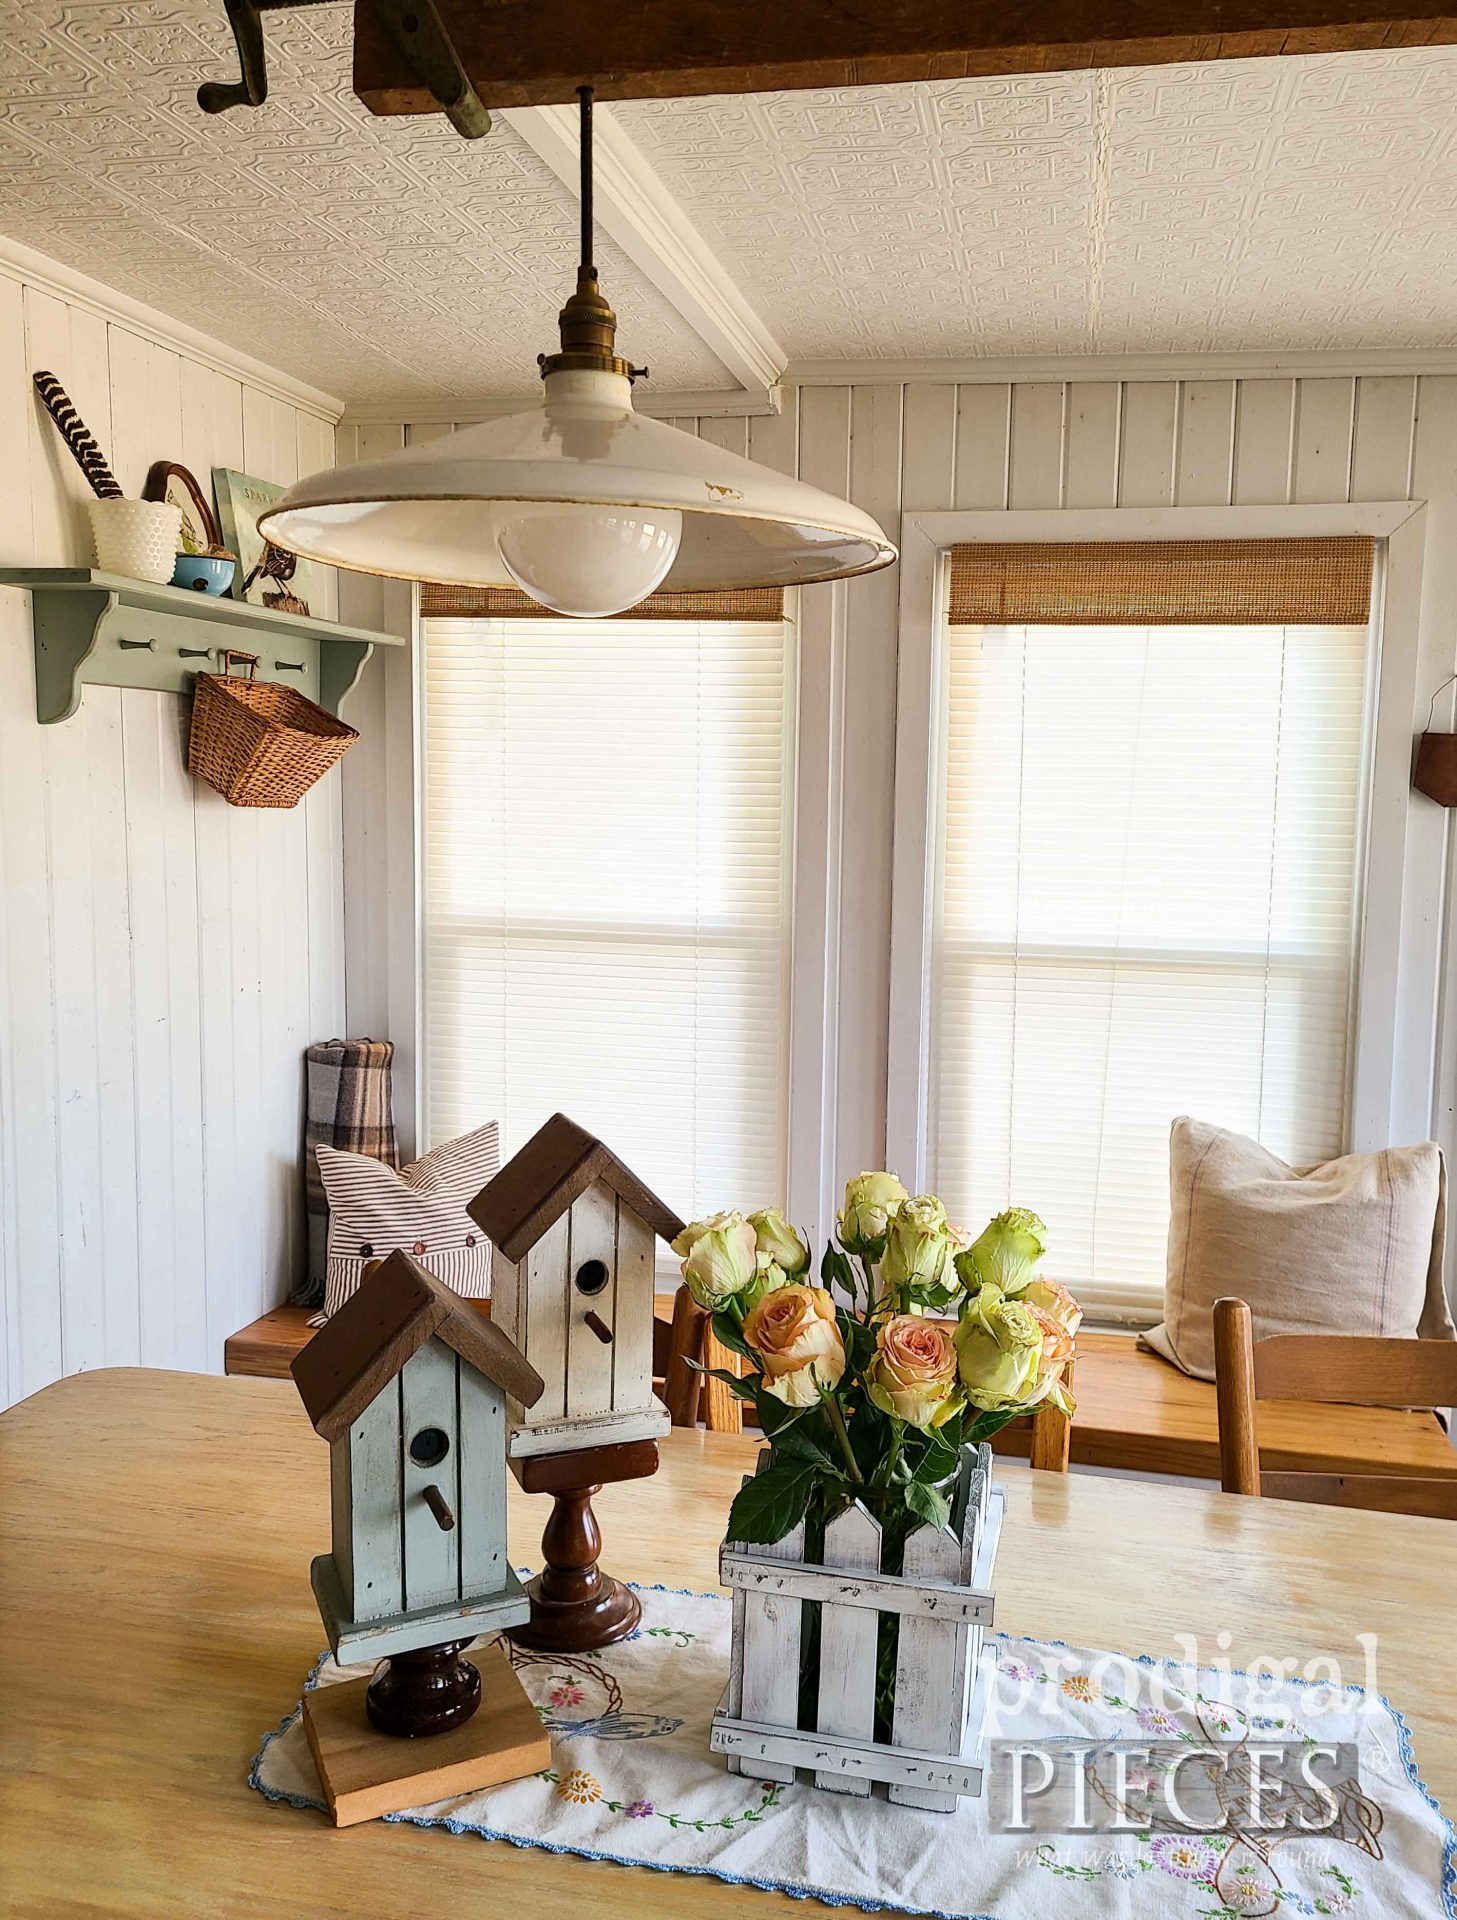 DIY Spring Farmhouse Decor from Upcycled Vintage Shelf by Larissa of Prodigal Pieces   prodigalpieces.com #prodigalpieces #home #spring #upcycled #homedecor